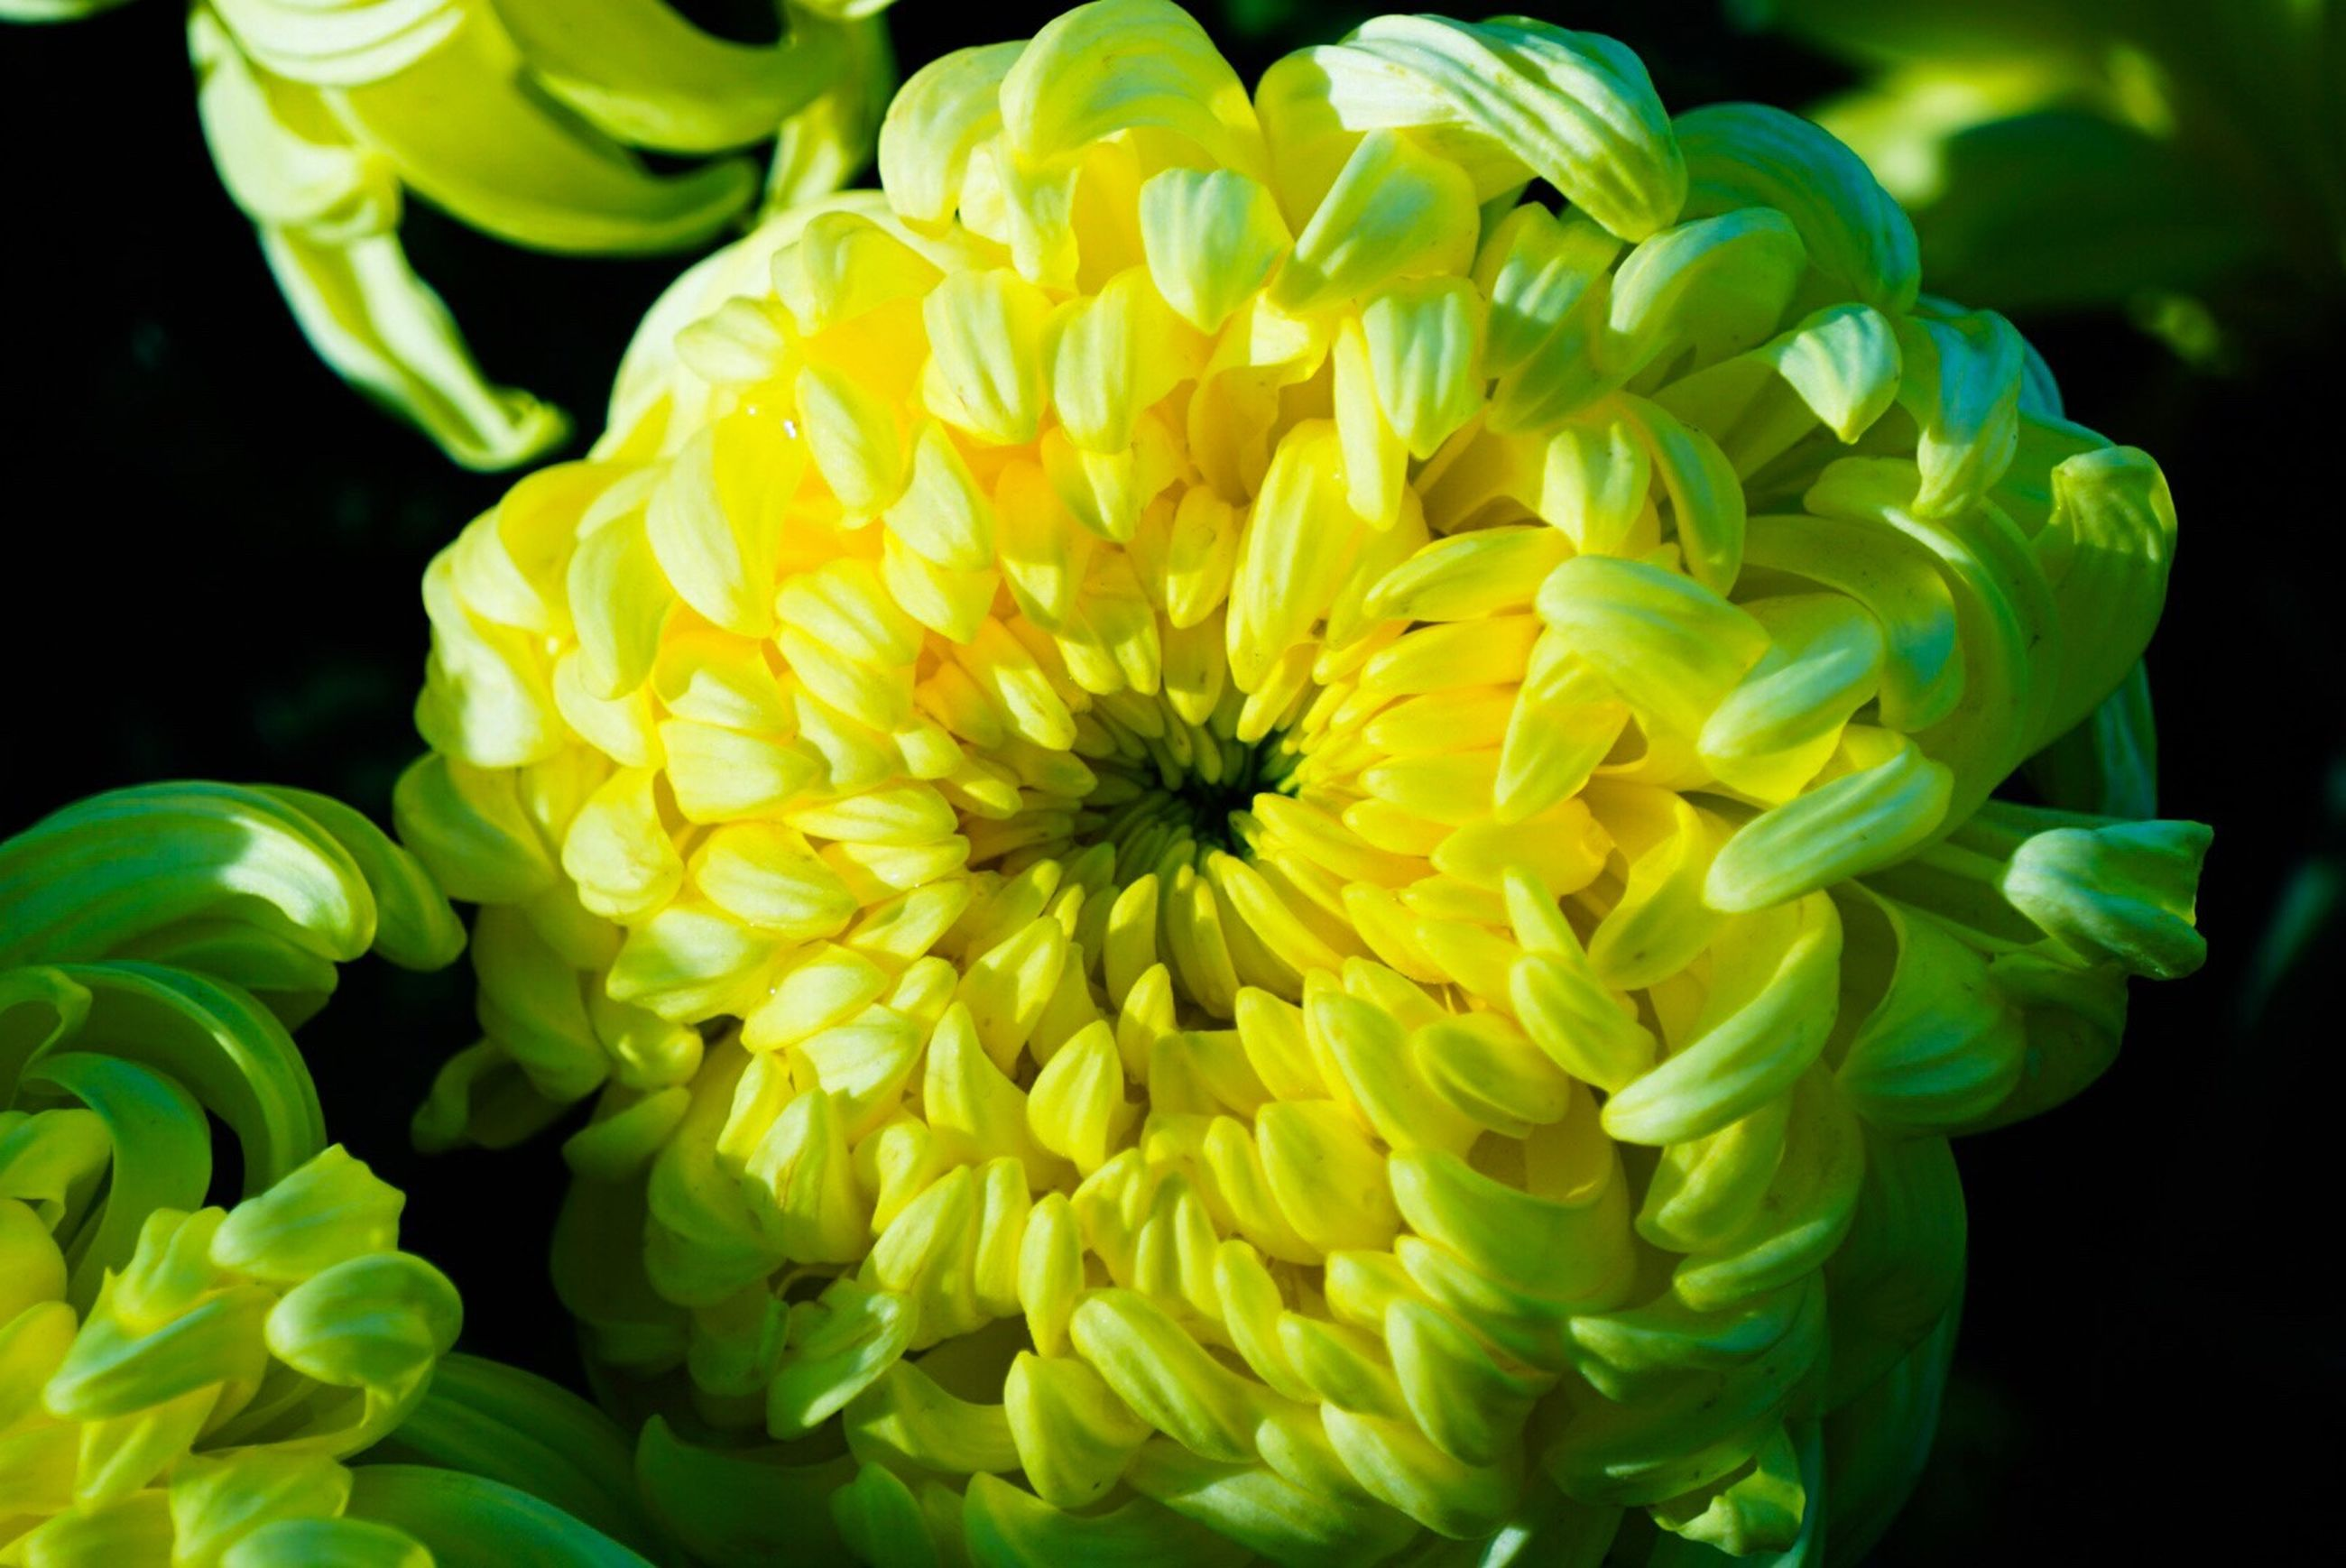 flower, fragility, yellow, petal, flower head, beauty in nature, nature, freshness, blooming, growth, close-up, green color, plant, no people, outdoors, day